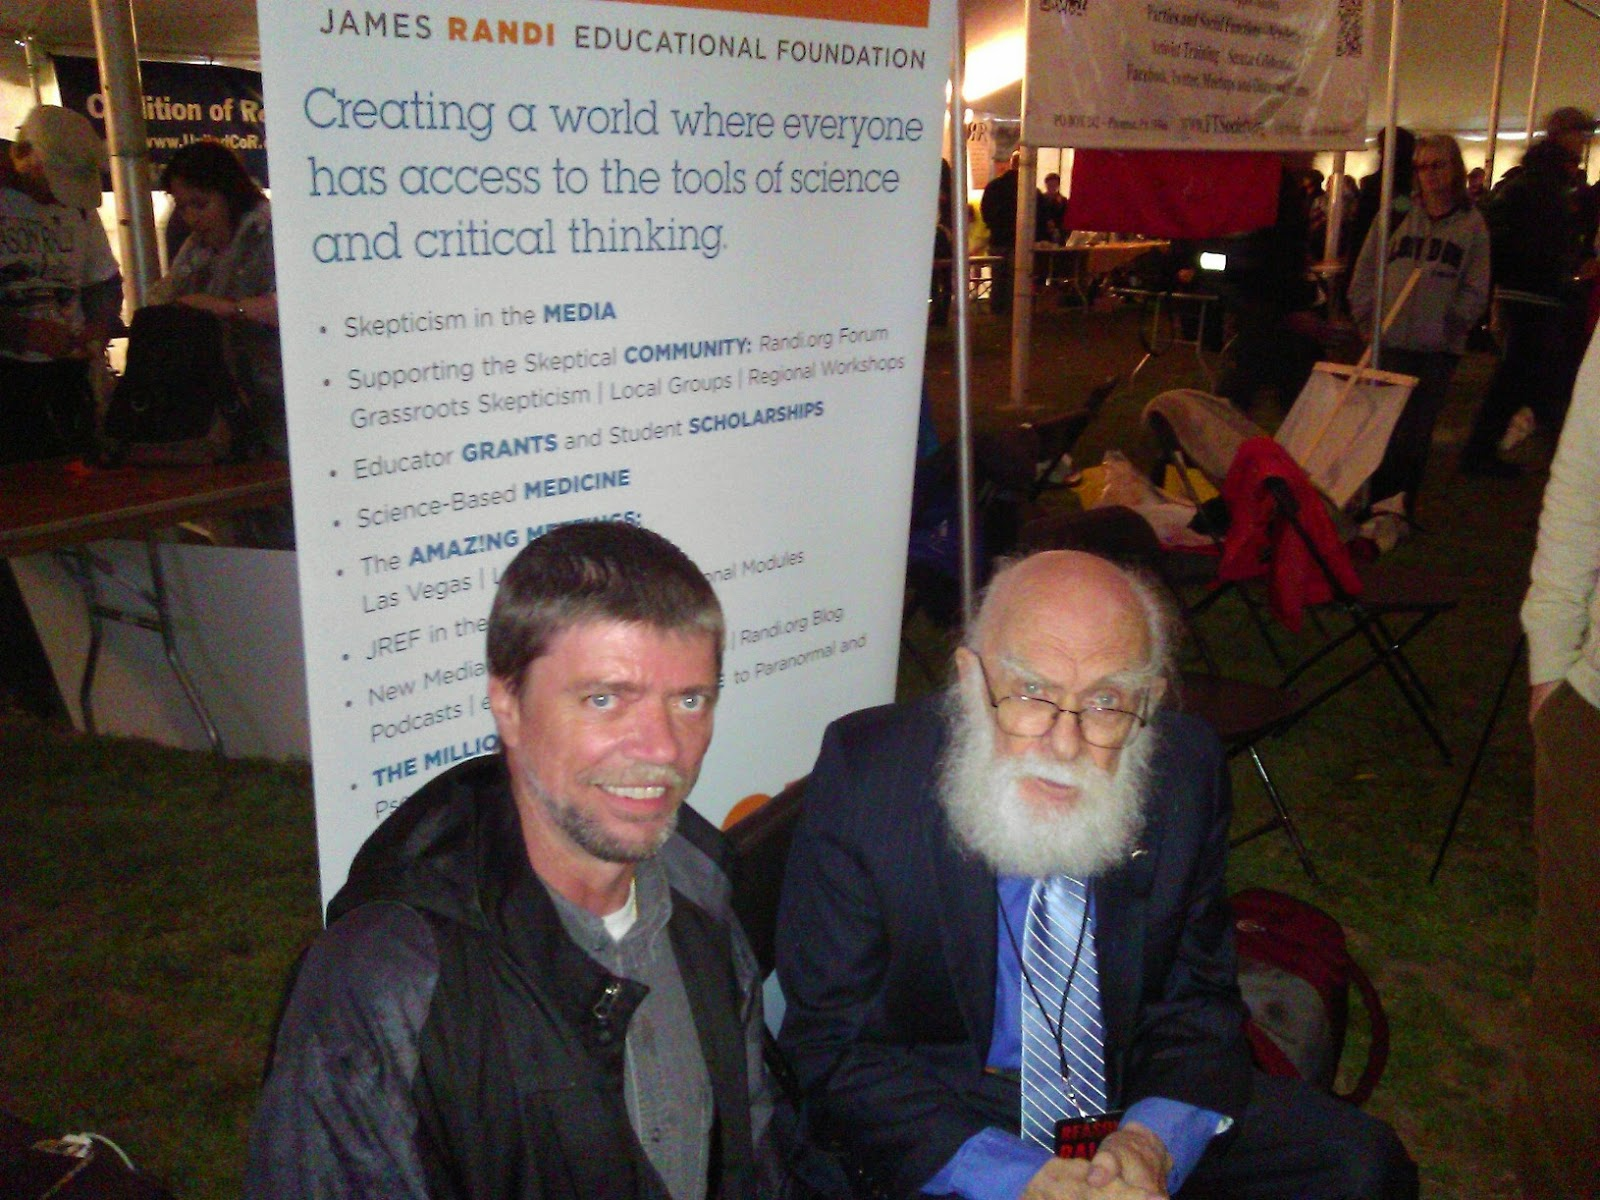 Yours truly and James Randi